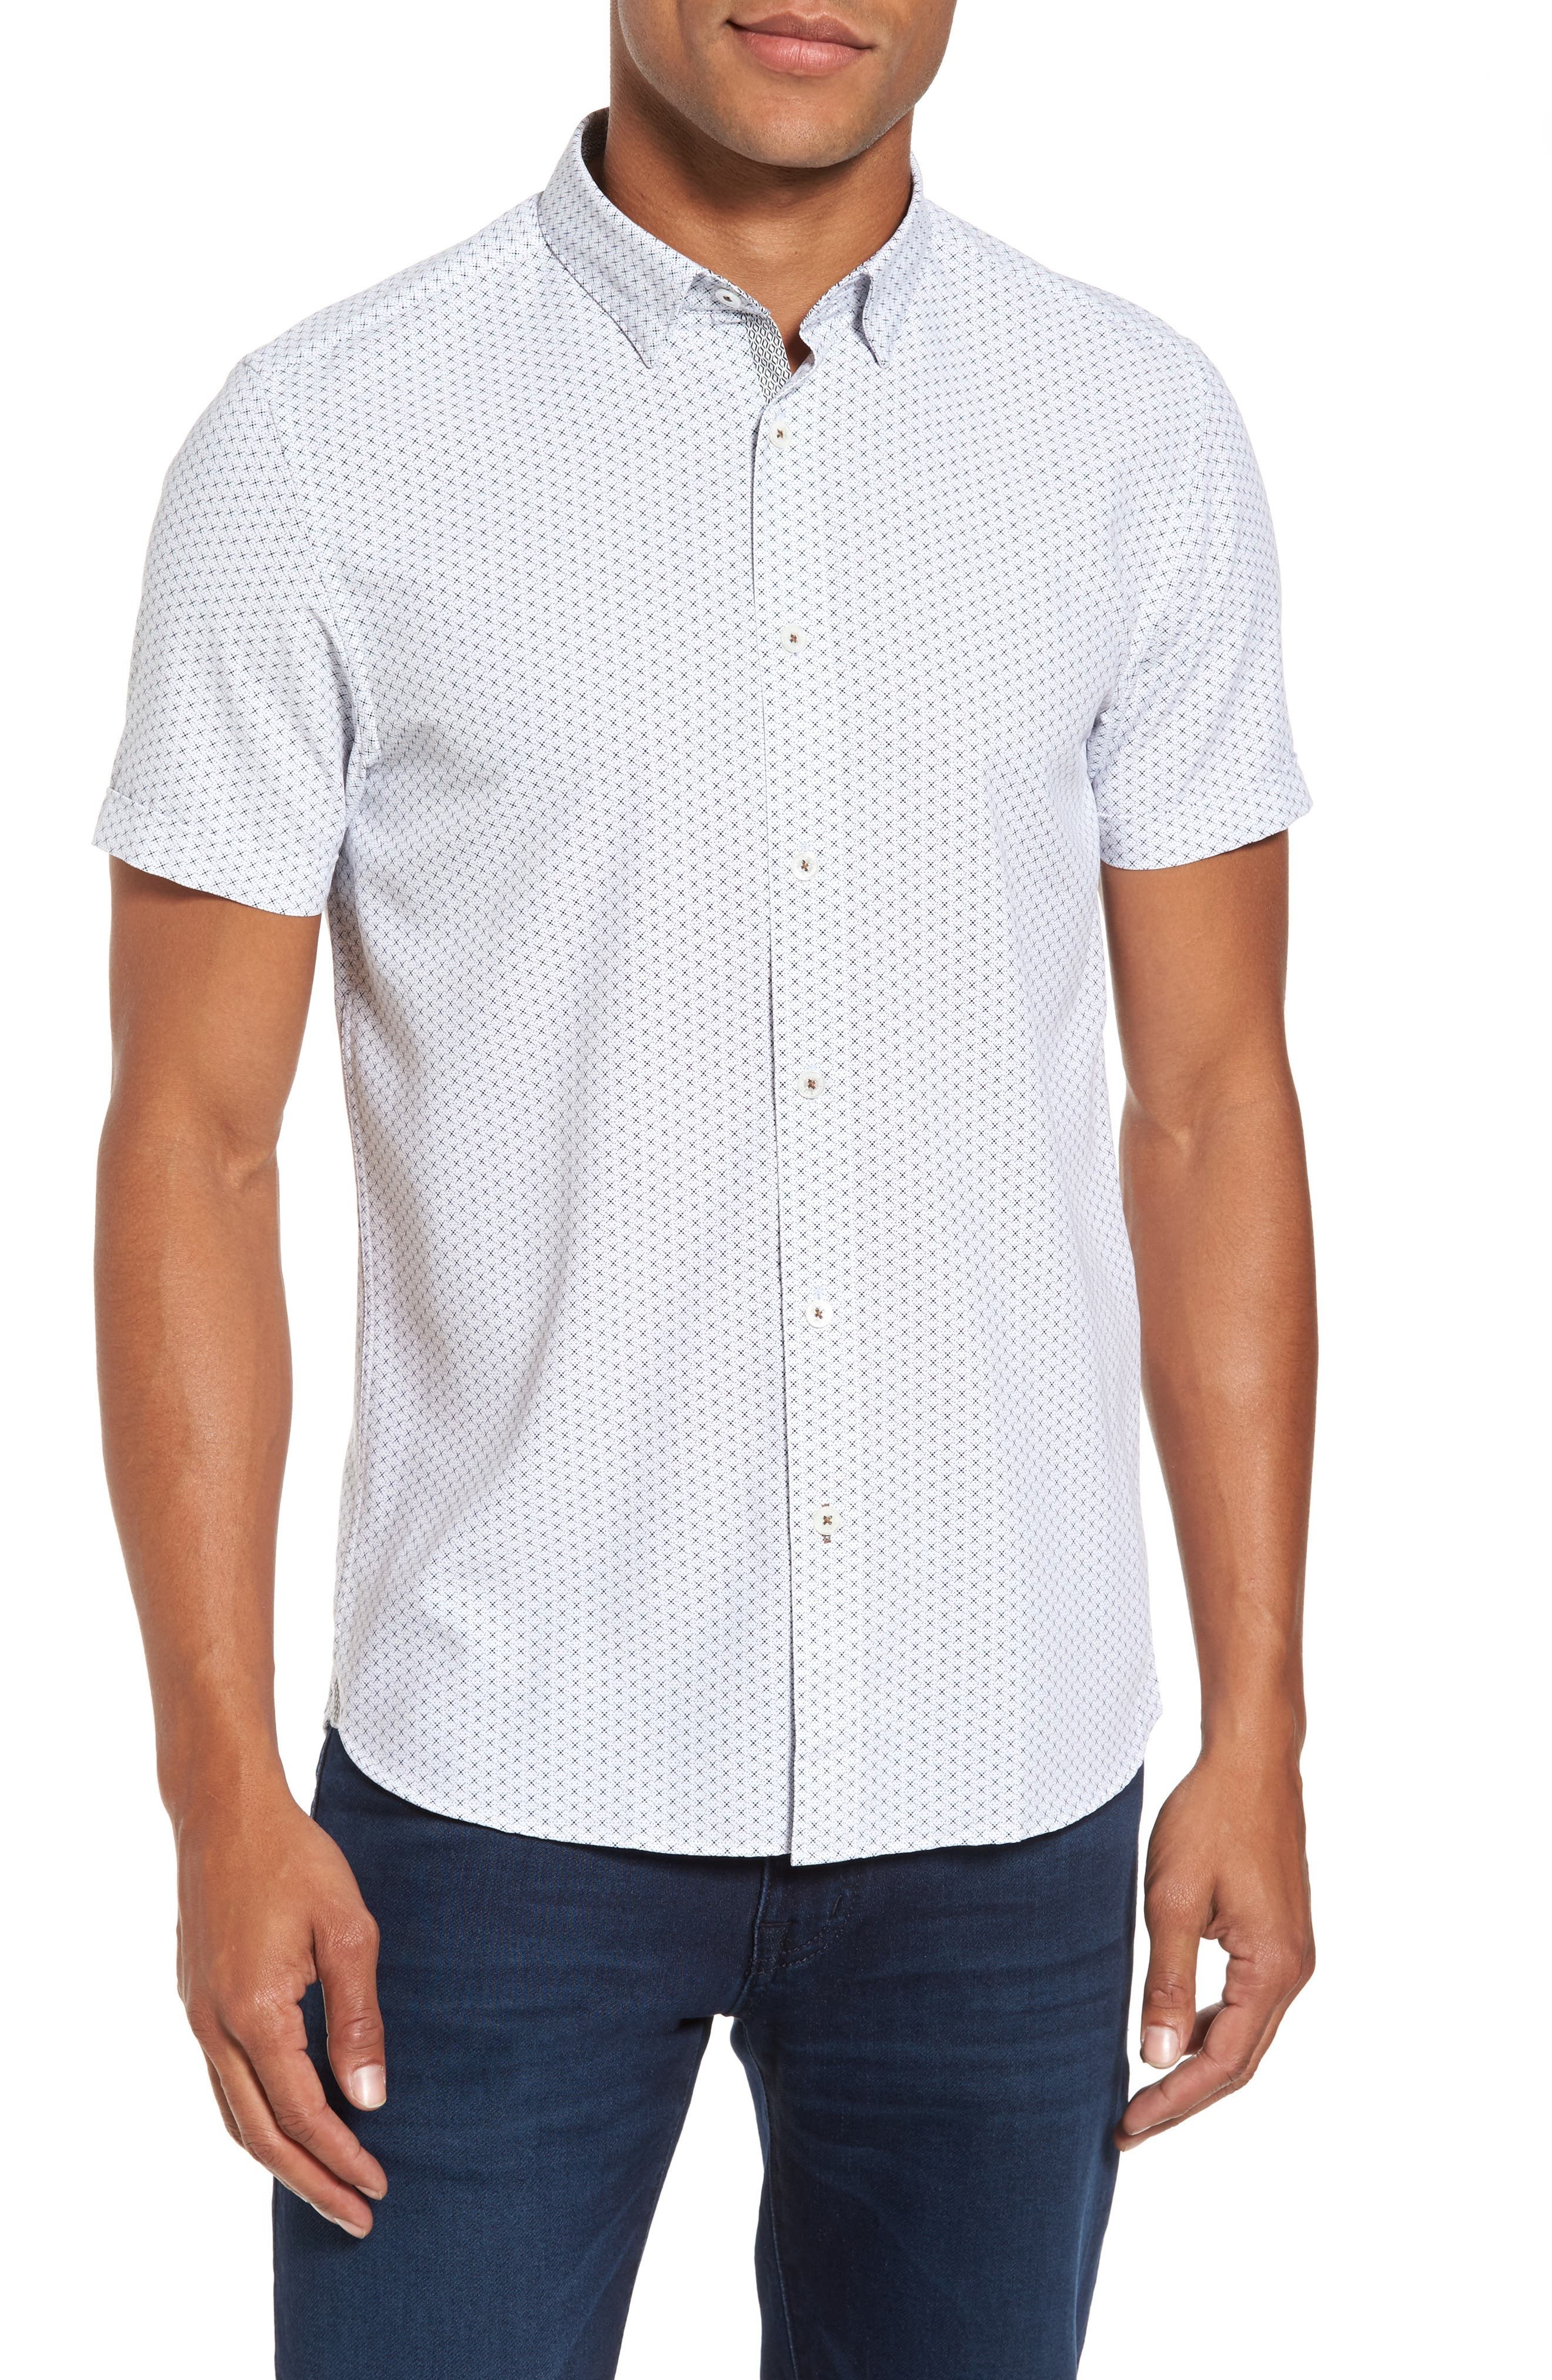 Main Image - Ted Baker London Geo Polynosic Slim Fit Woven Shirt